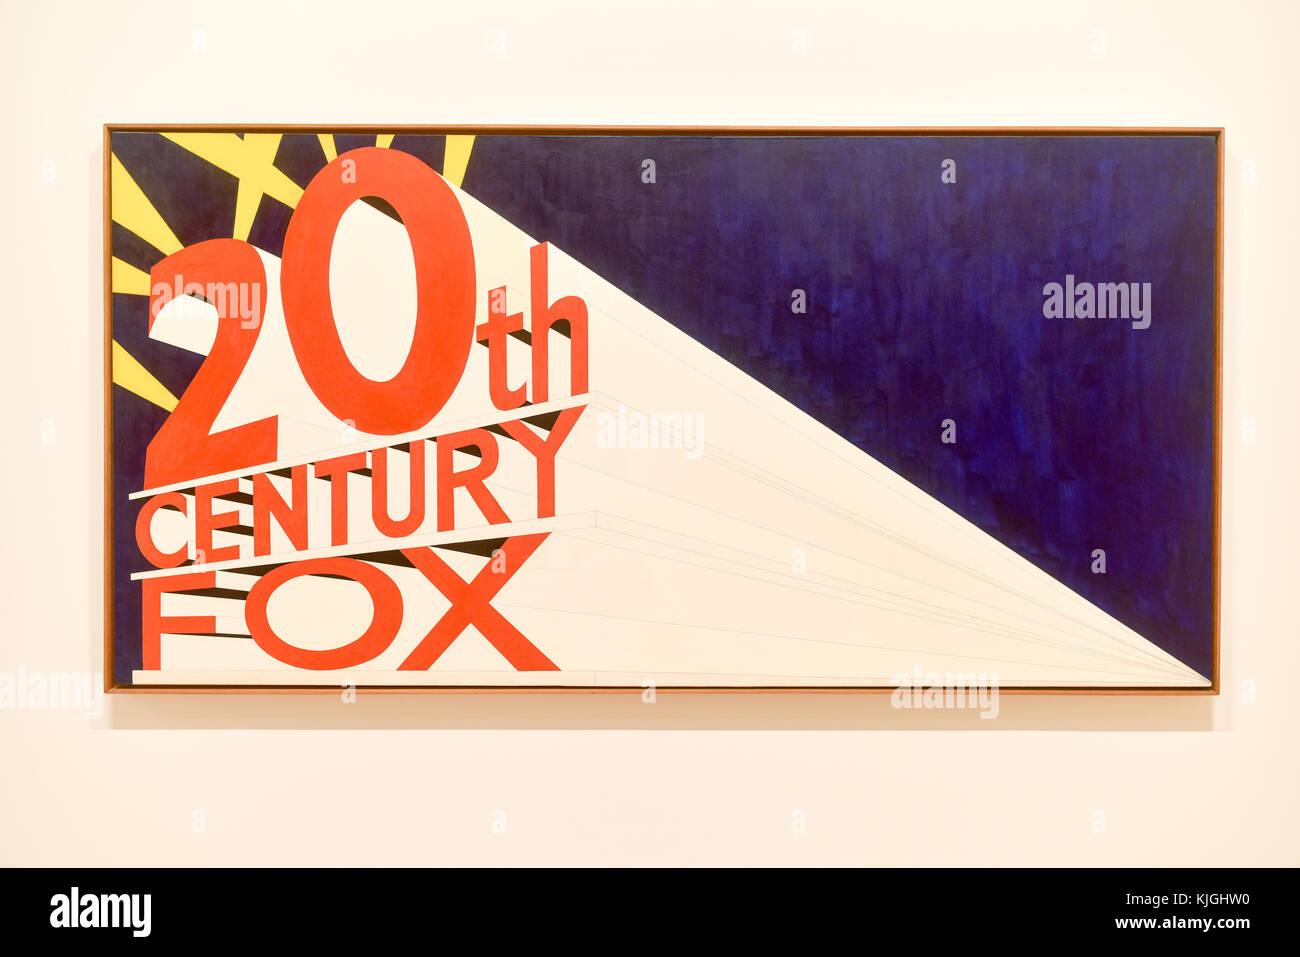 New York City - August 7, 2015: 20th Century Fox logo as